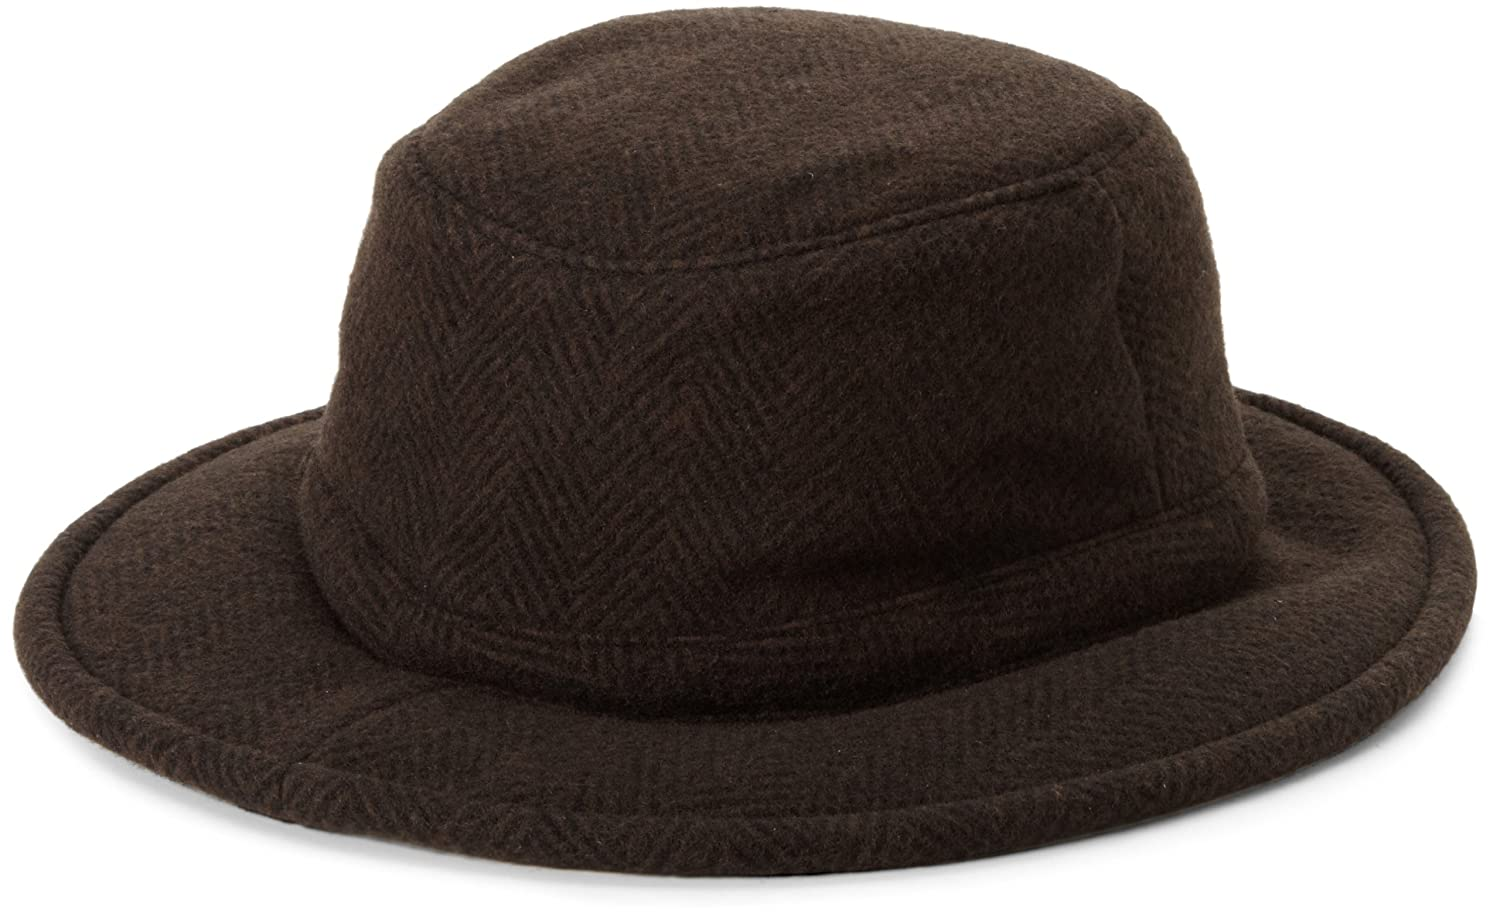 Tilley Winter Hat, Brown/Black Herringbone, 7 5/8 Tilley Endurables TW2